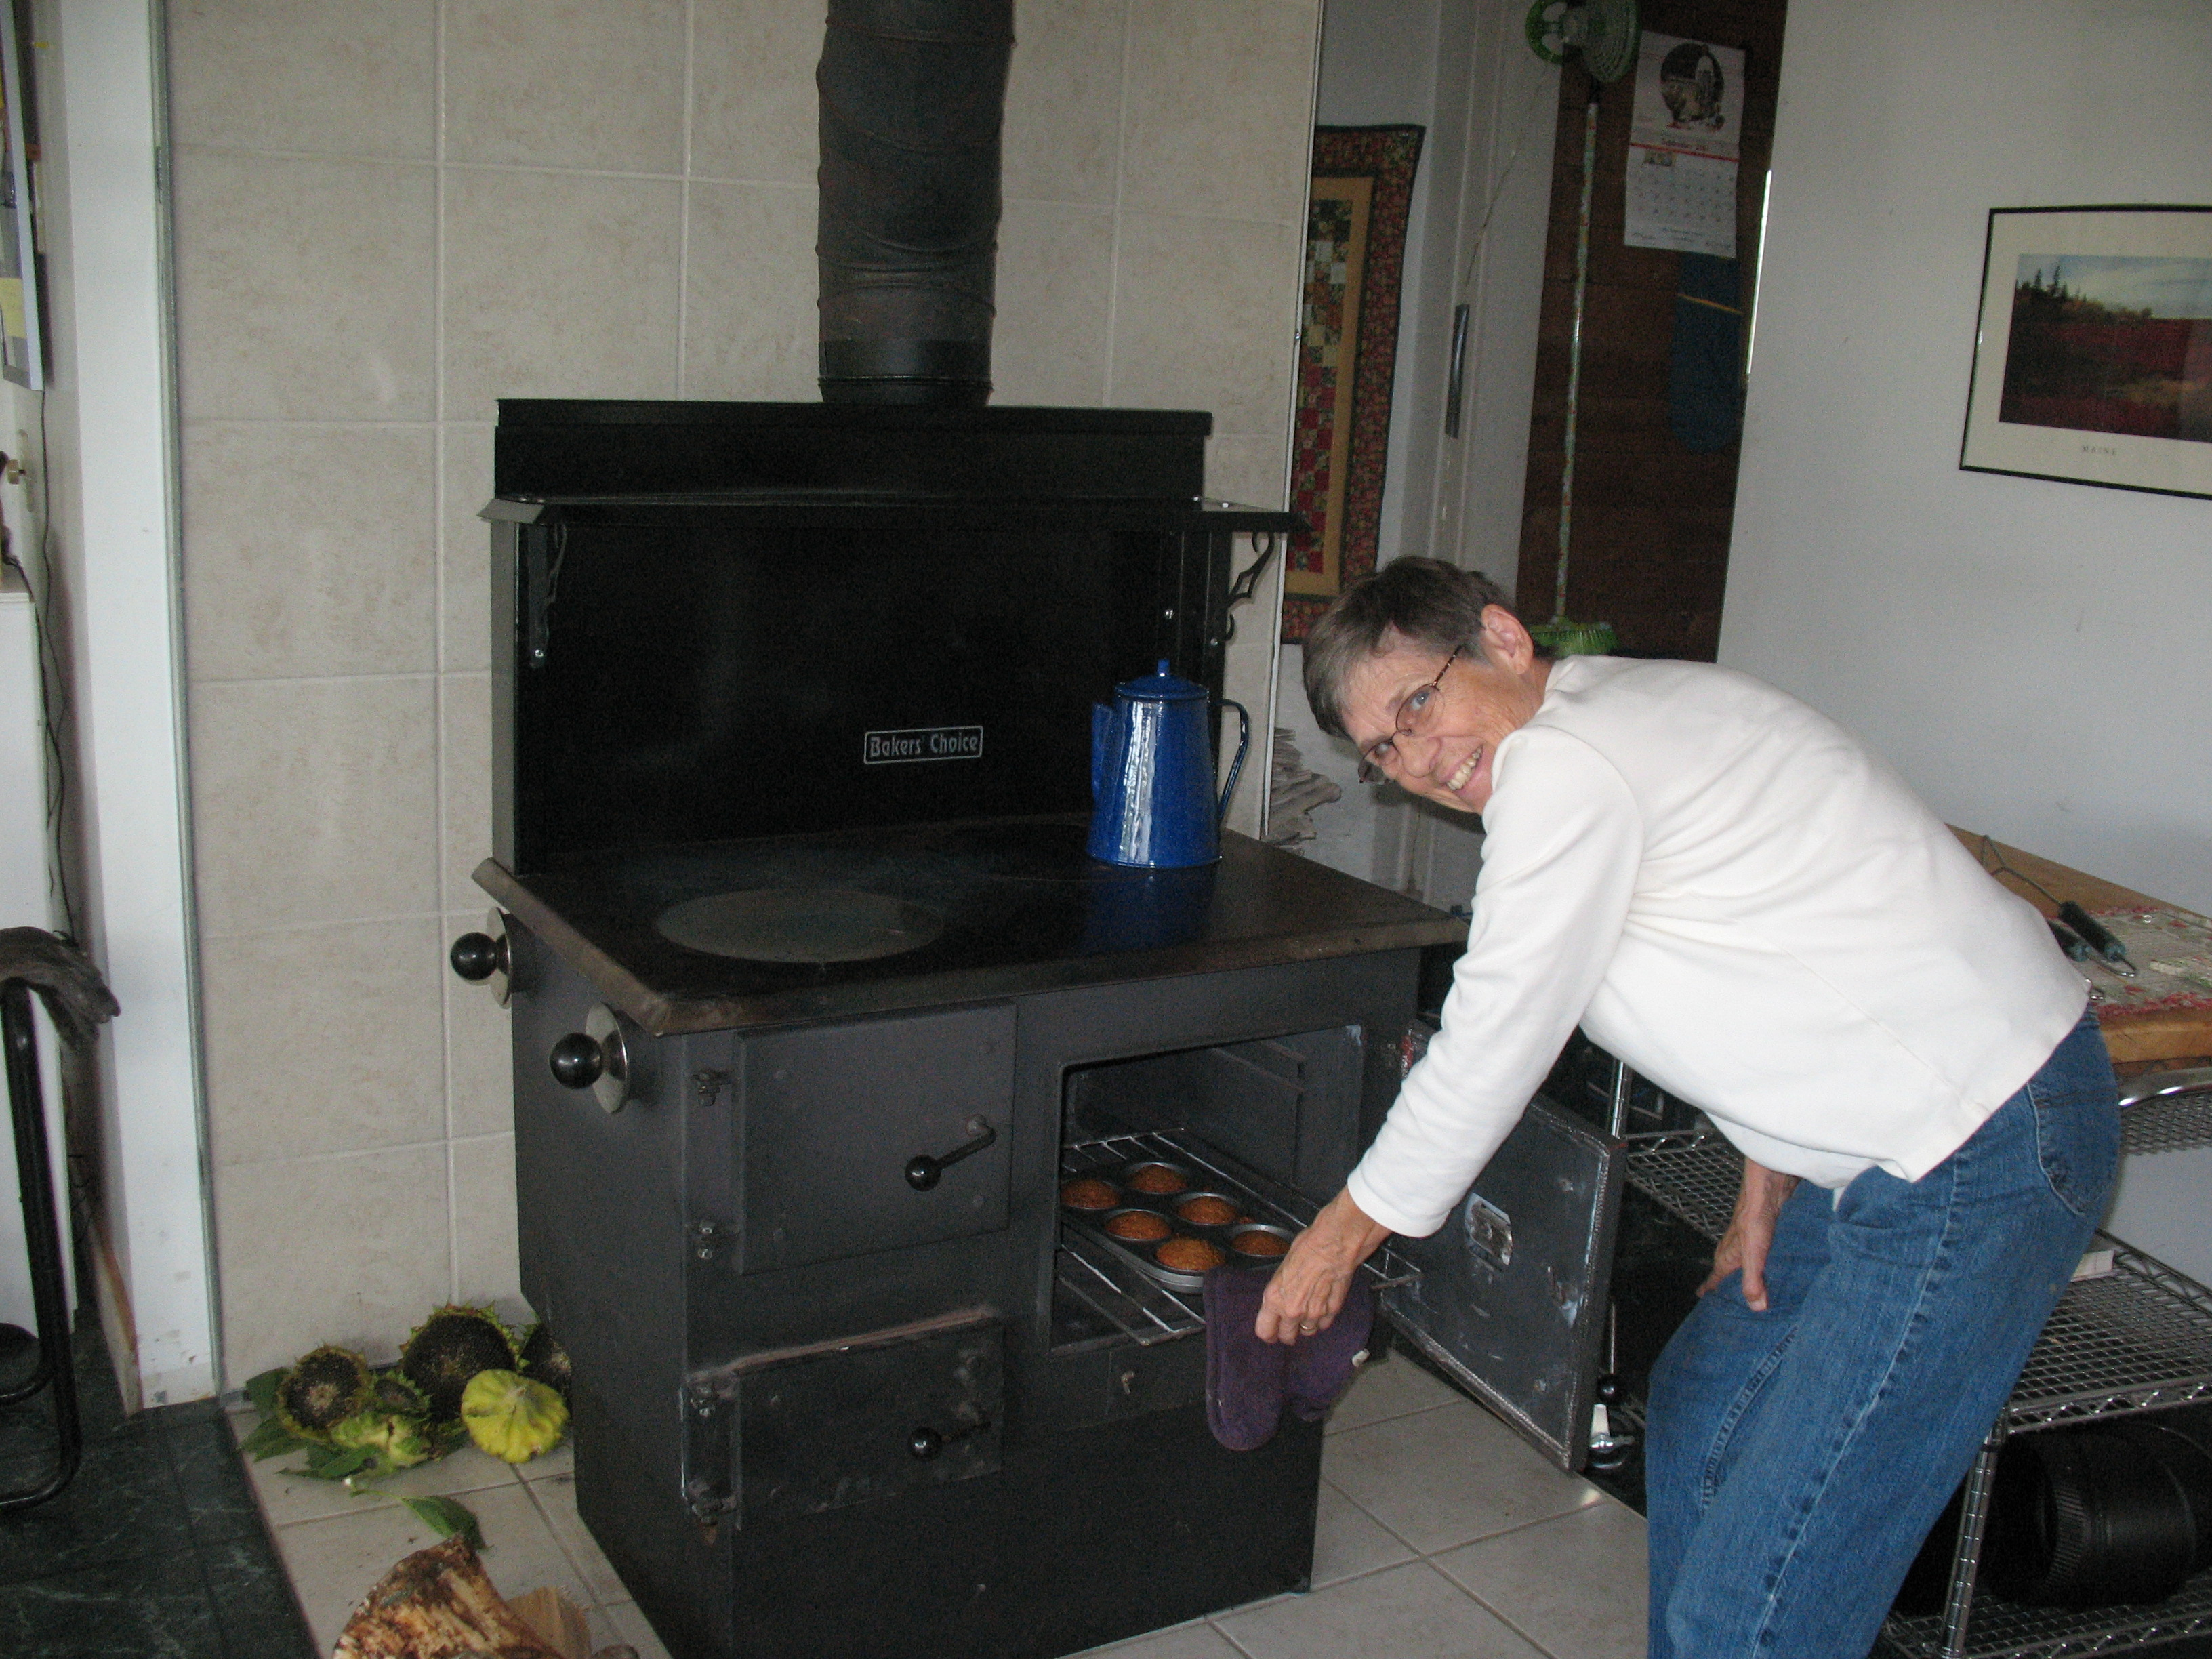 Wood cook stove life lessons for Diy cooking stove